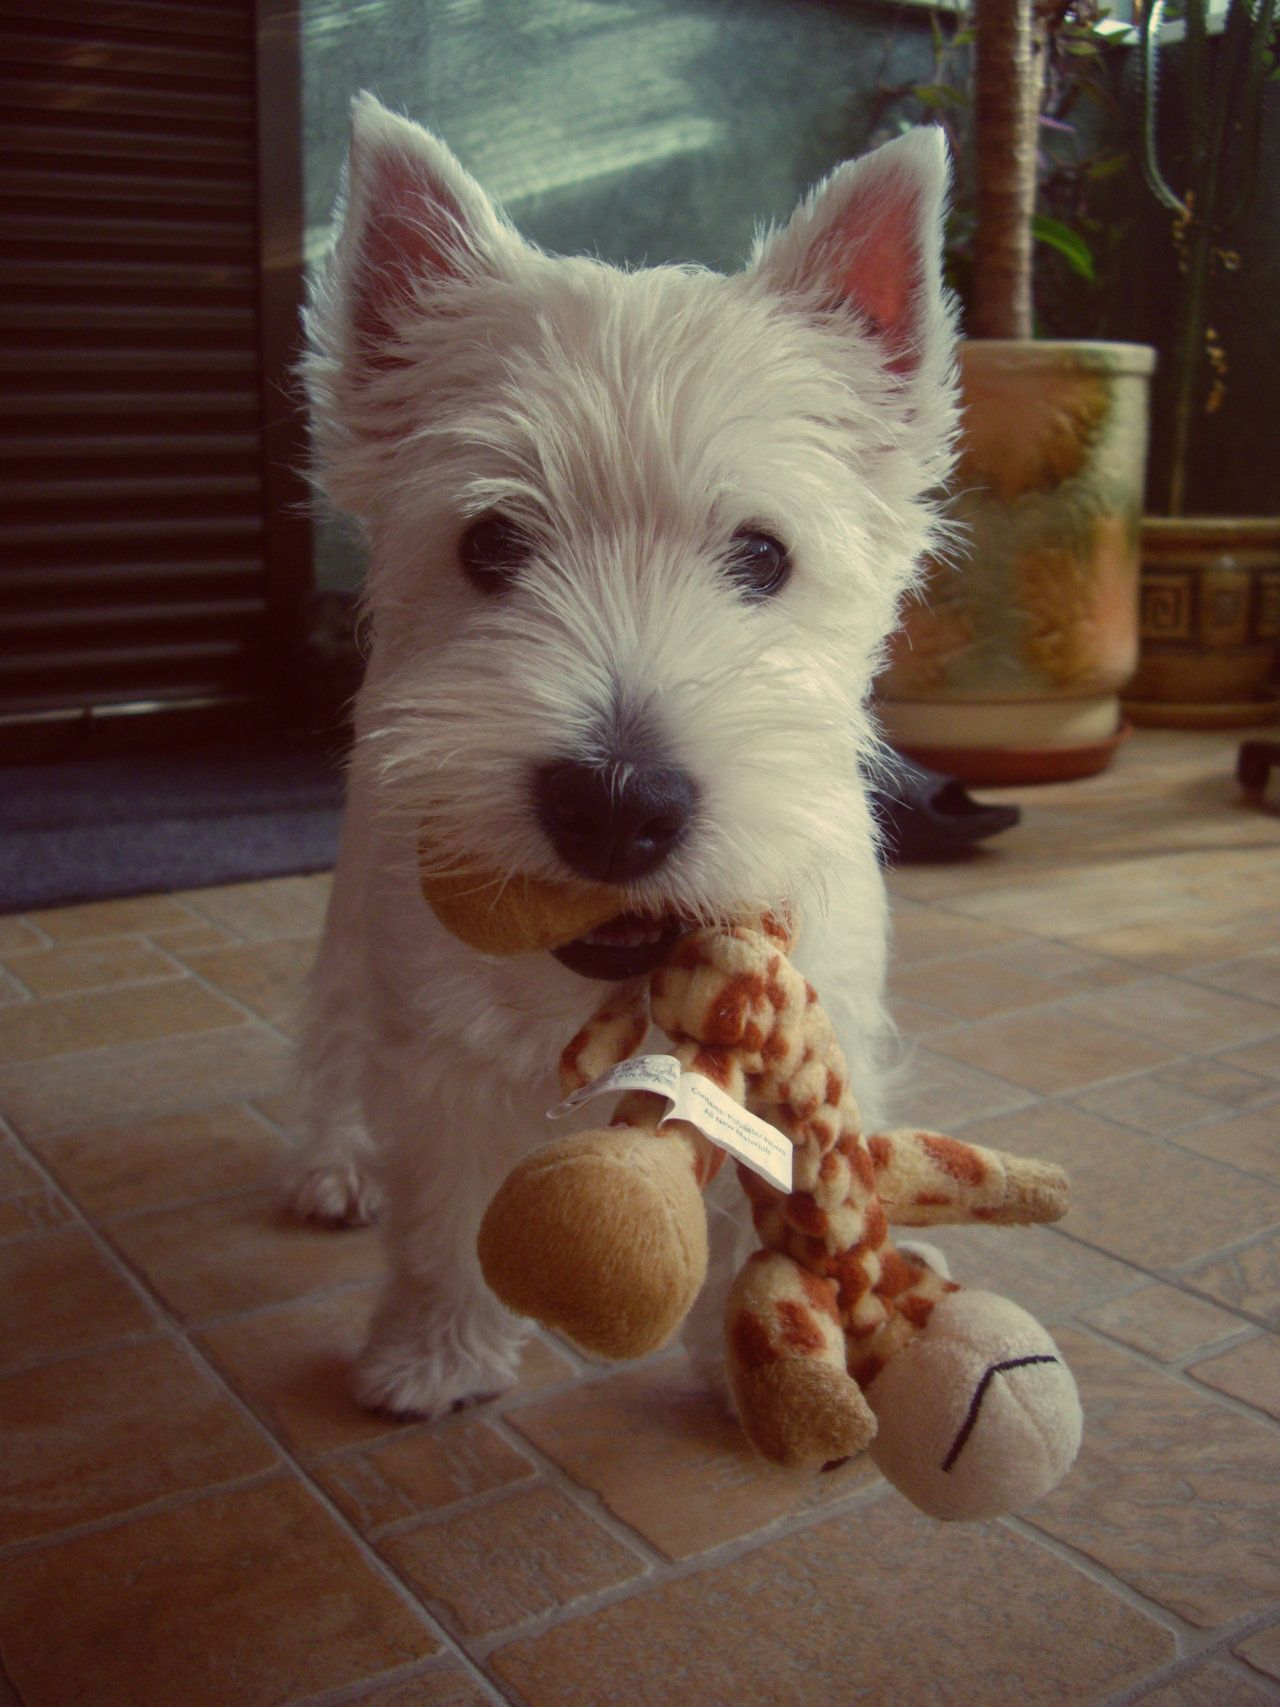 West Highland Terriers image by Christina McEdwards